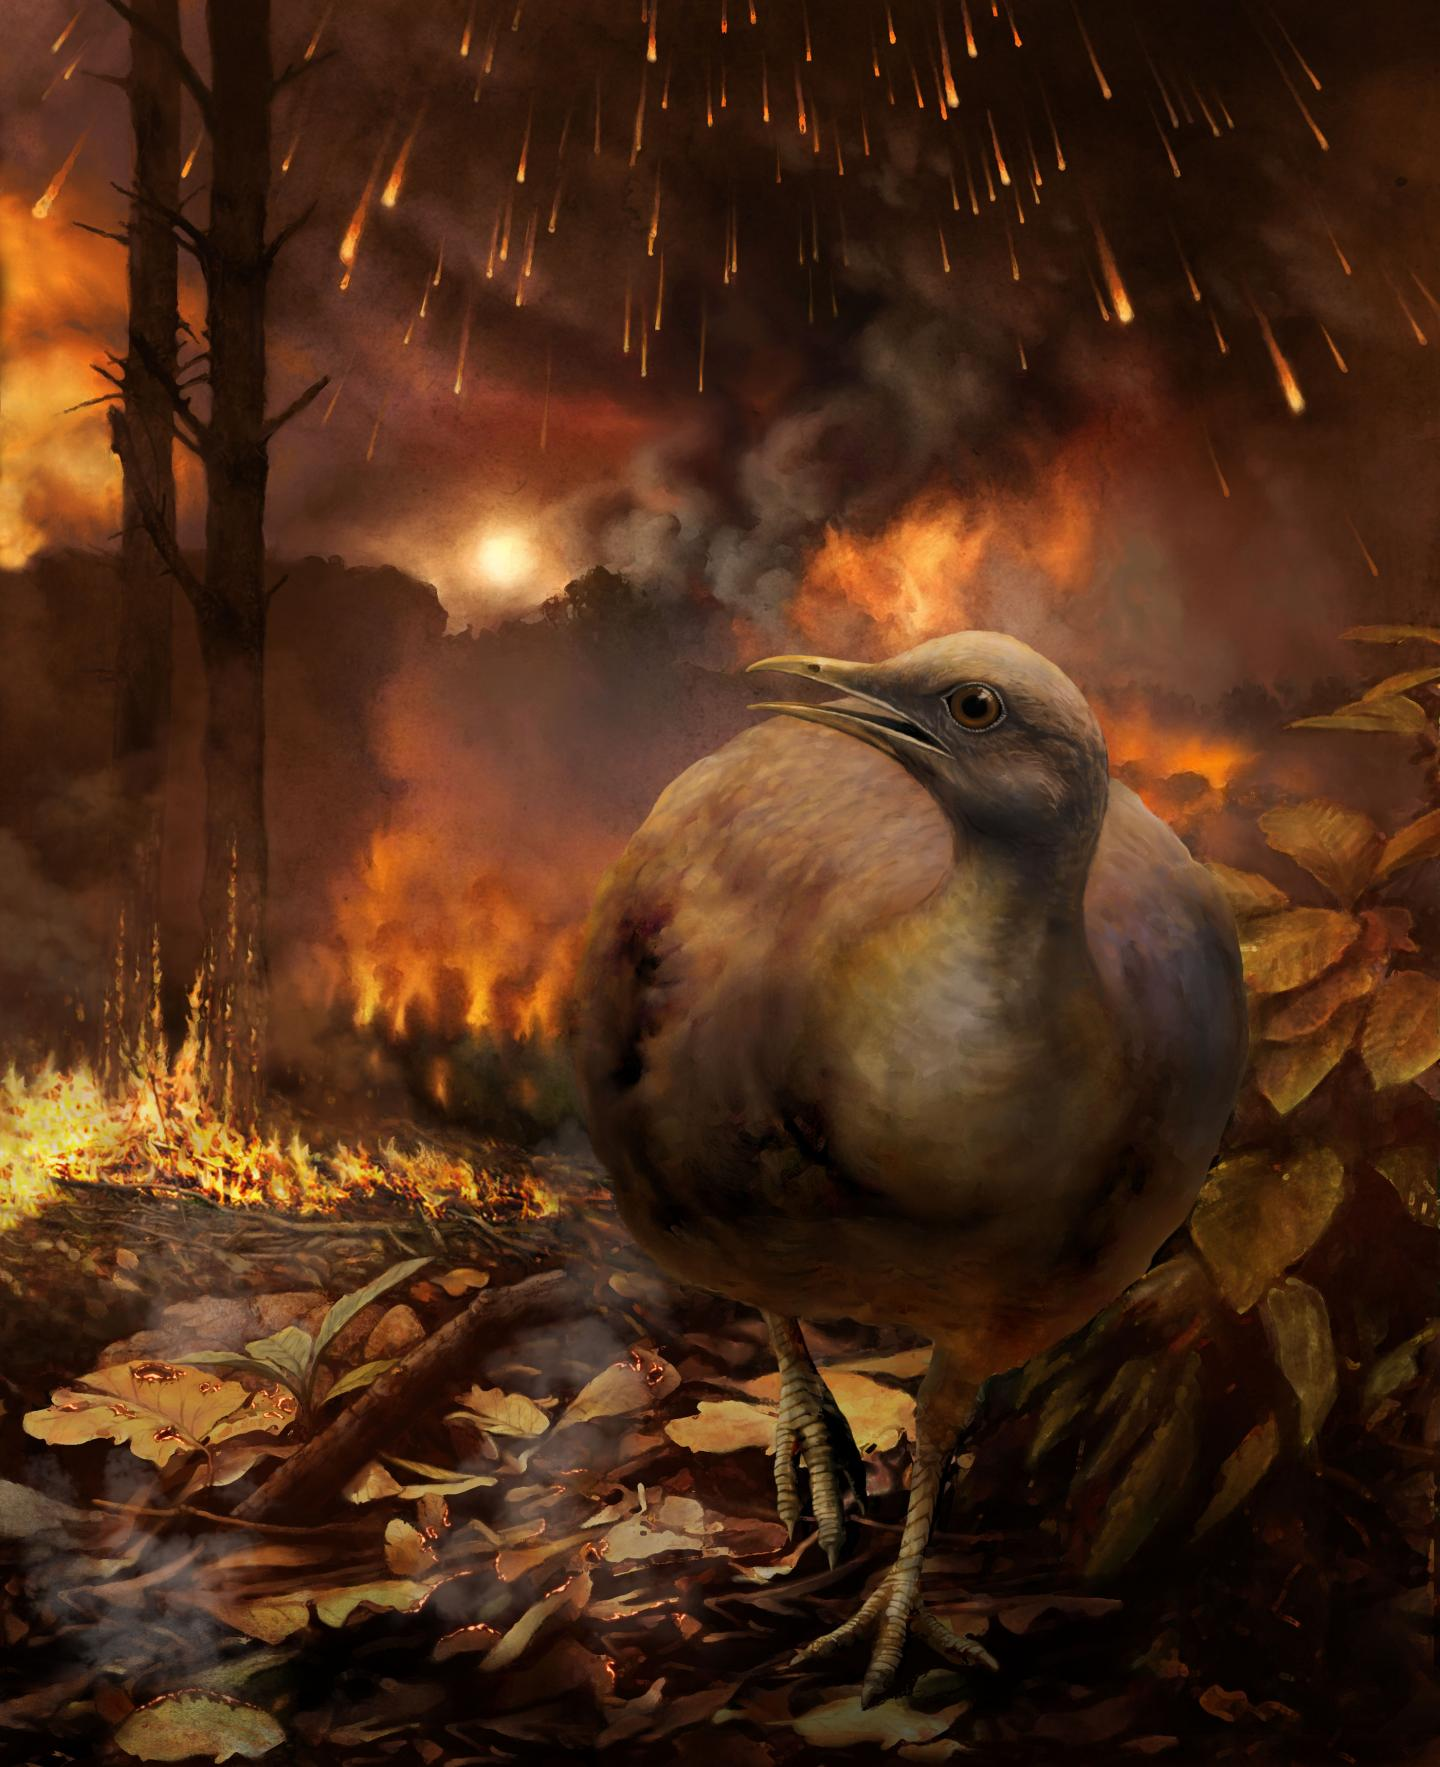 Bird Flees a Burning Forest in the Aftermath of the Asteroid Strike